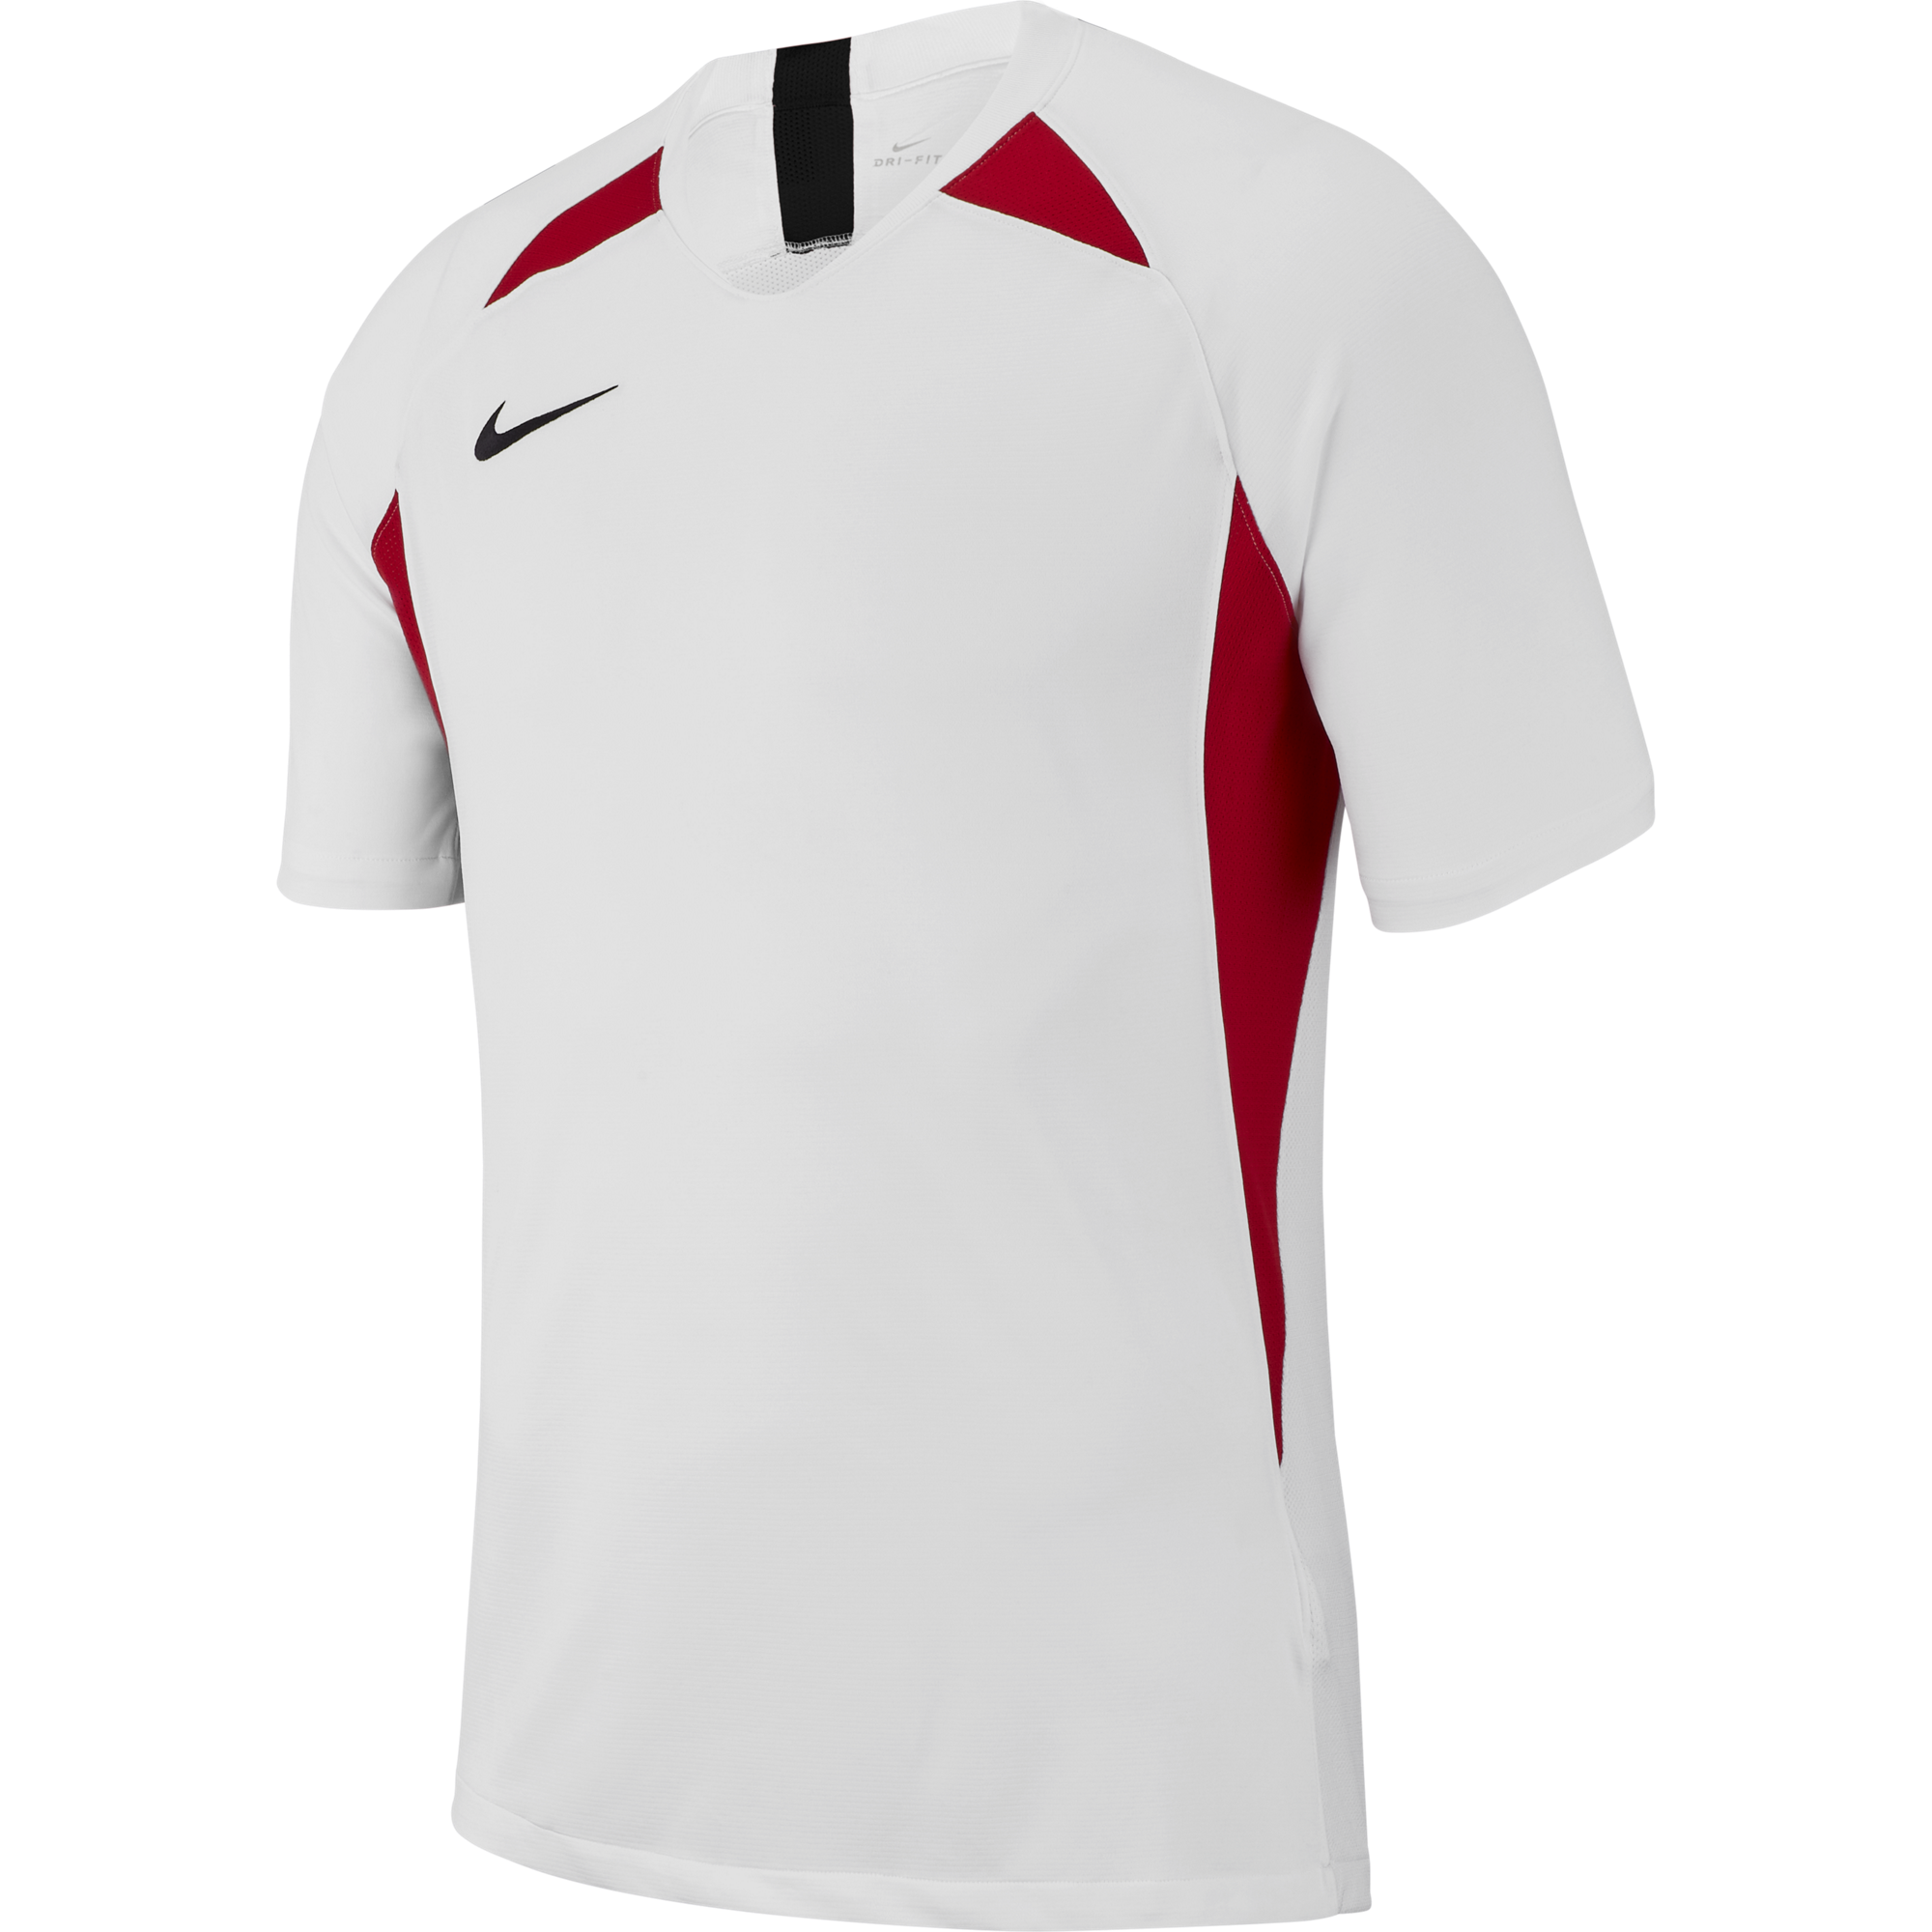 nike legend jersey white uni red black  16017 p